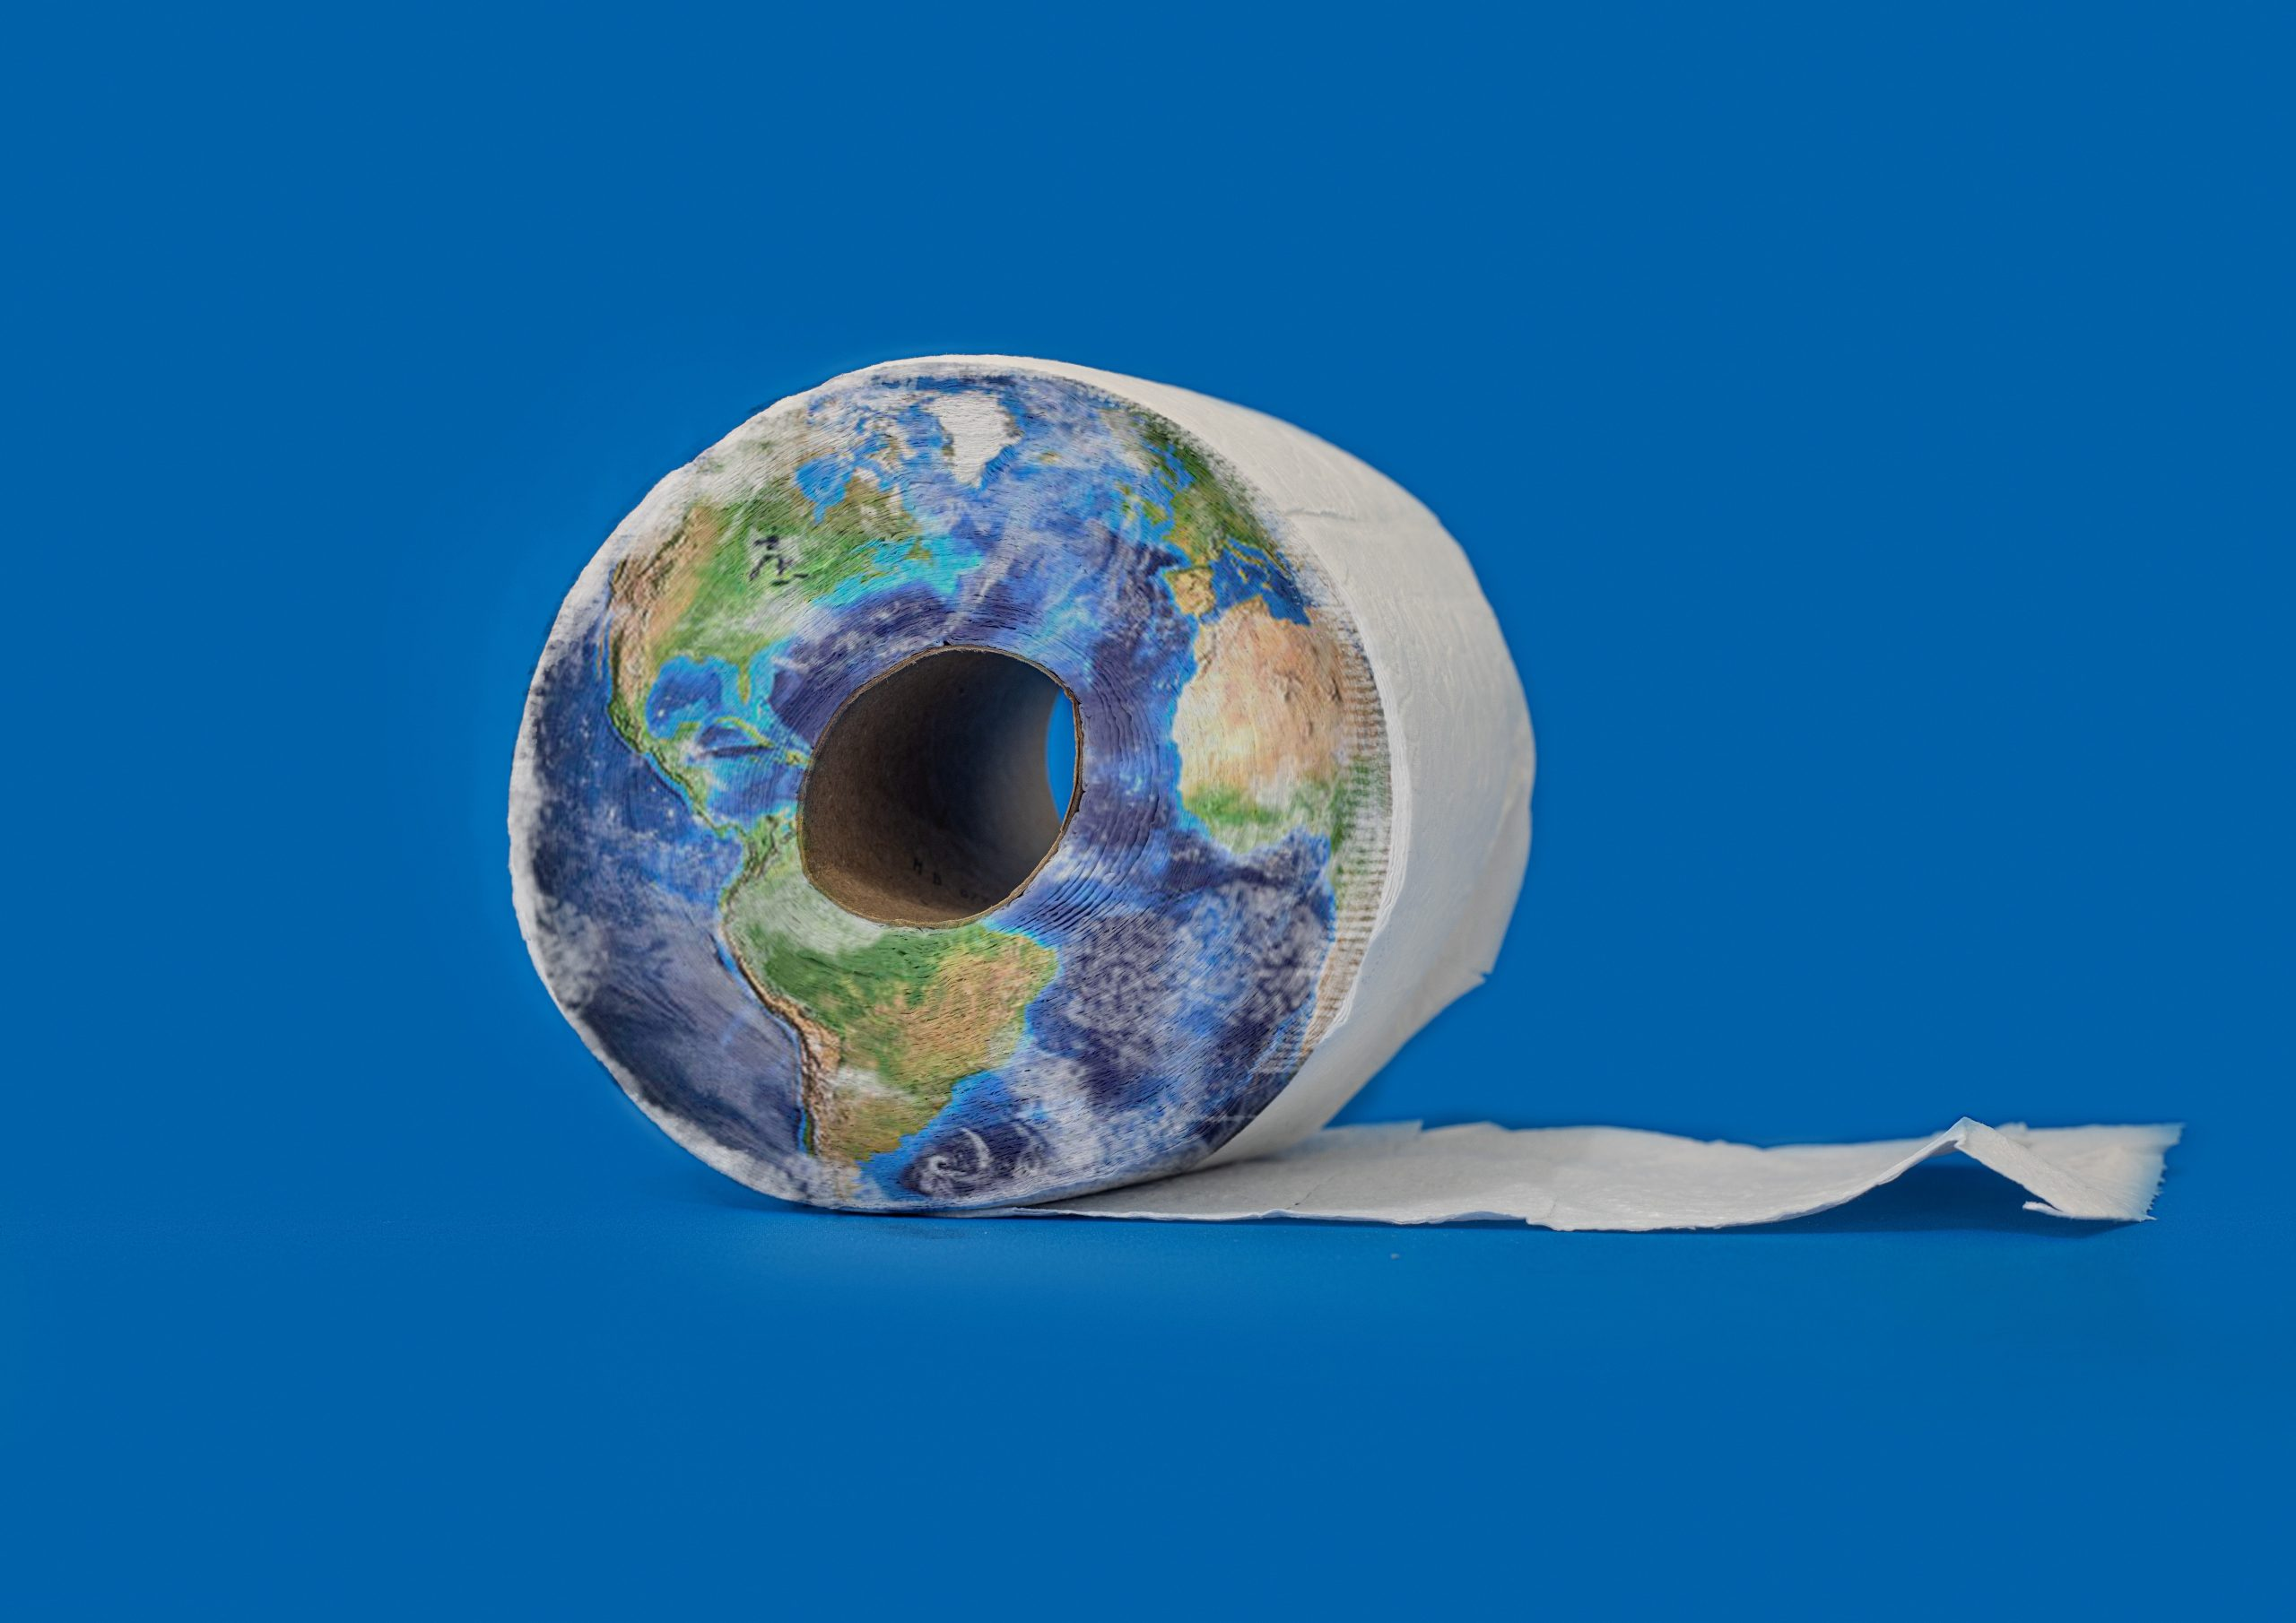 world toilet culture - toilet paper to go - bathrooms in other countries - what countries don't use toilet paper